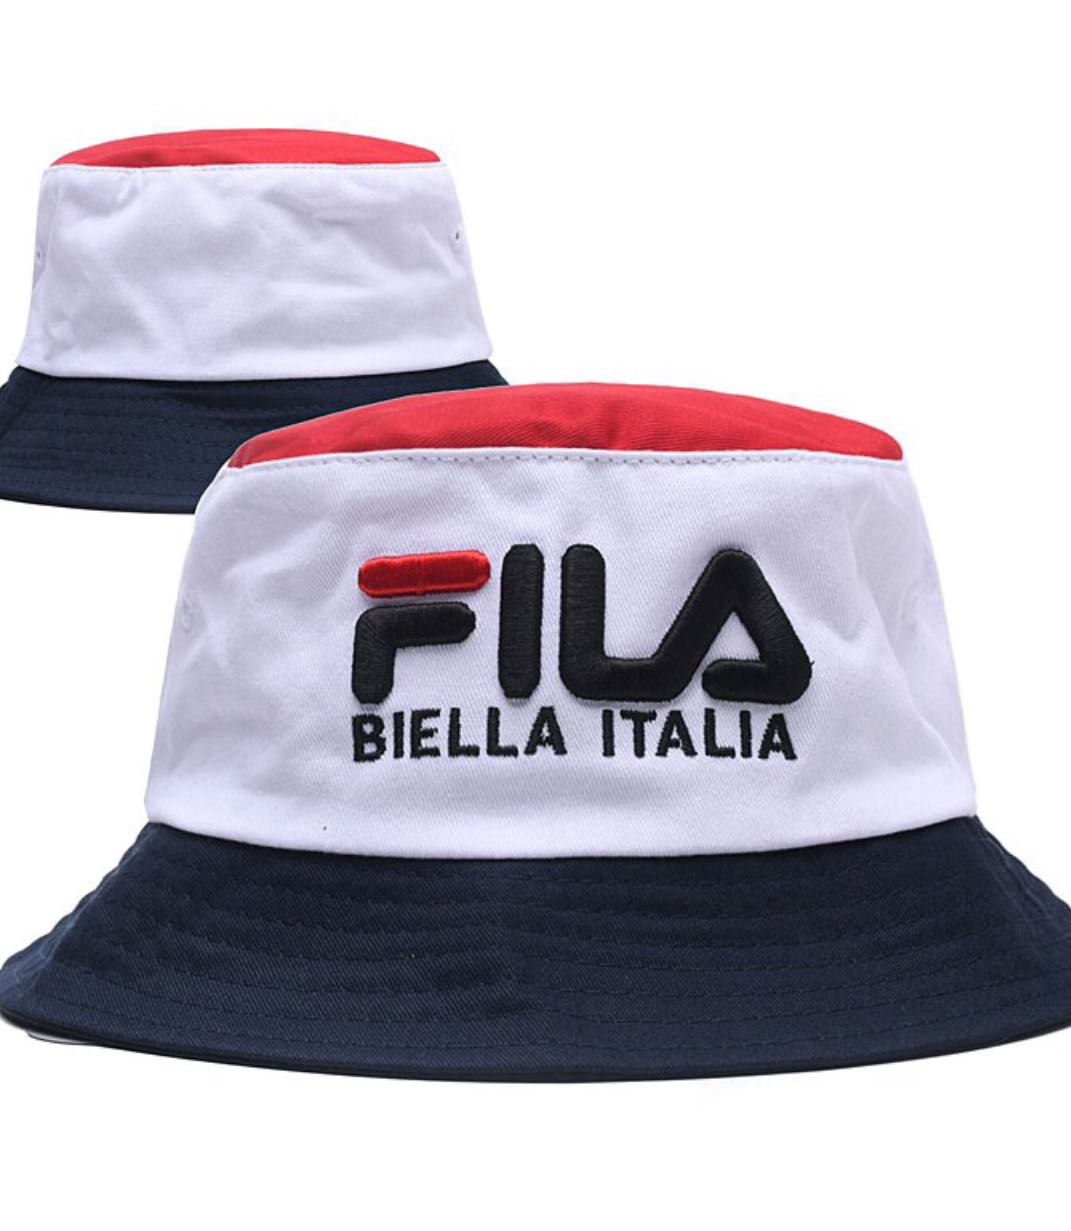 france fila bucket hat online shop preorder preorder mens fashion on  carousell 883e6 db1b3 b86faca47bce